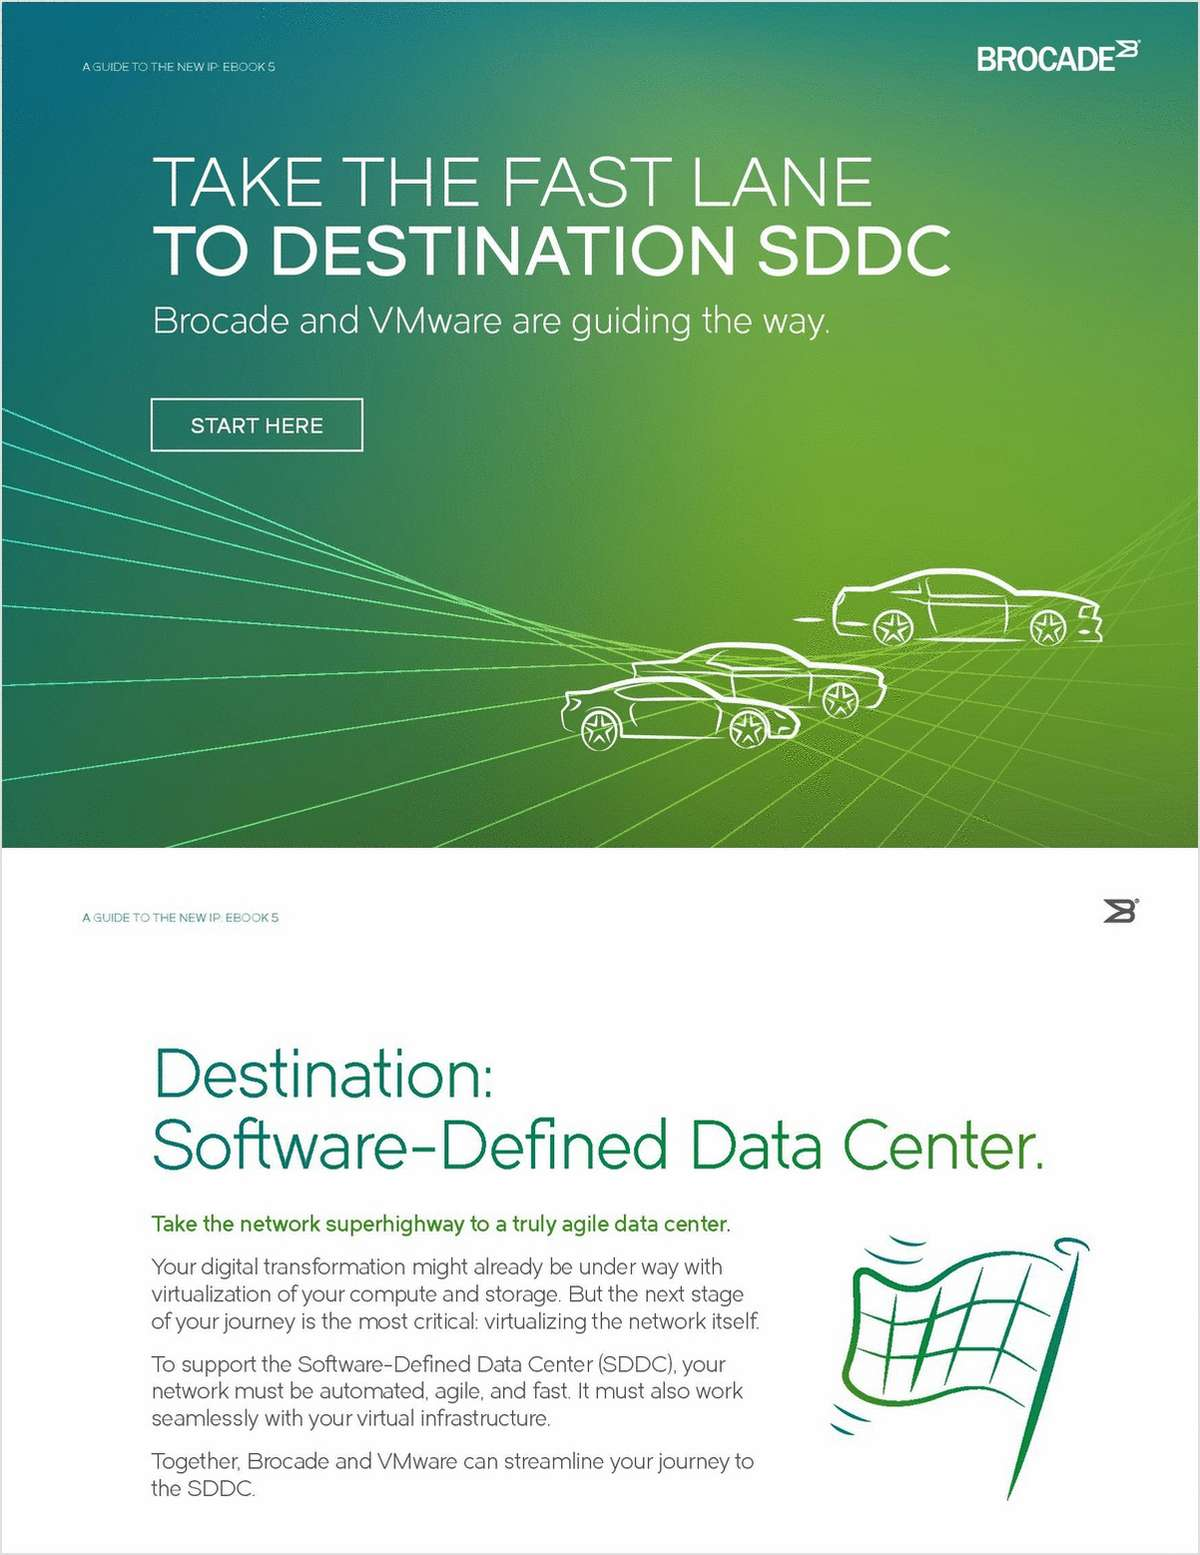 Take the Fast Lane to SDDC